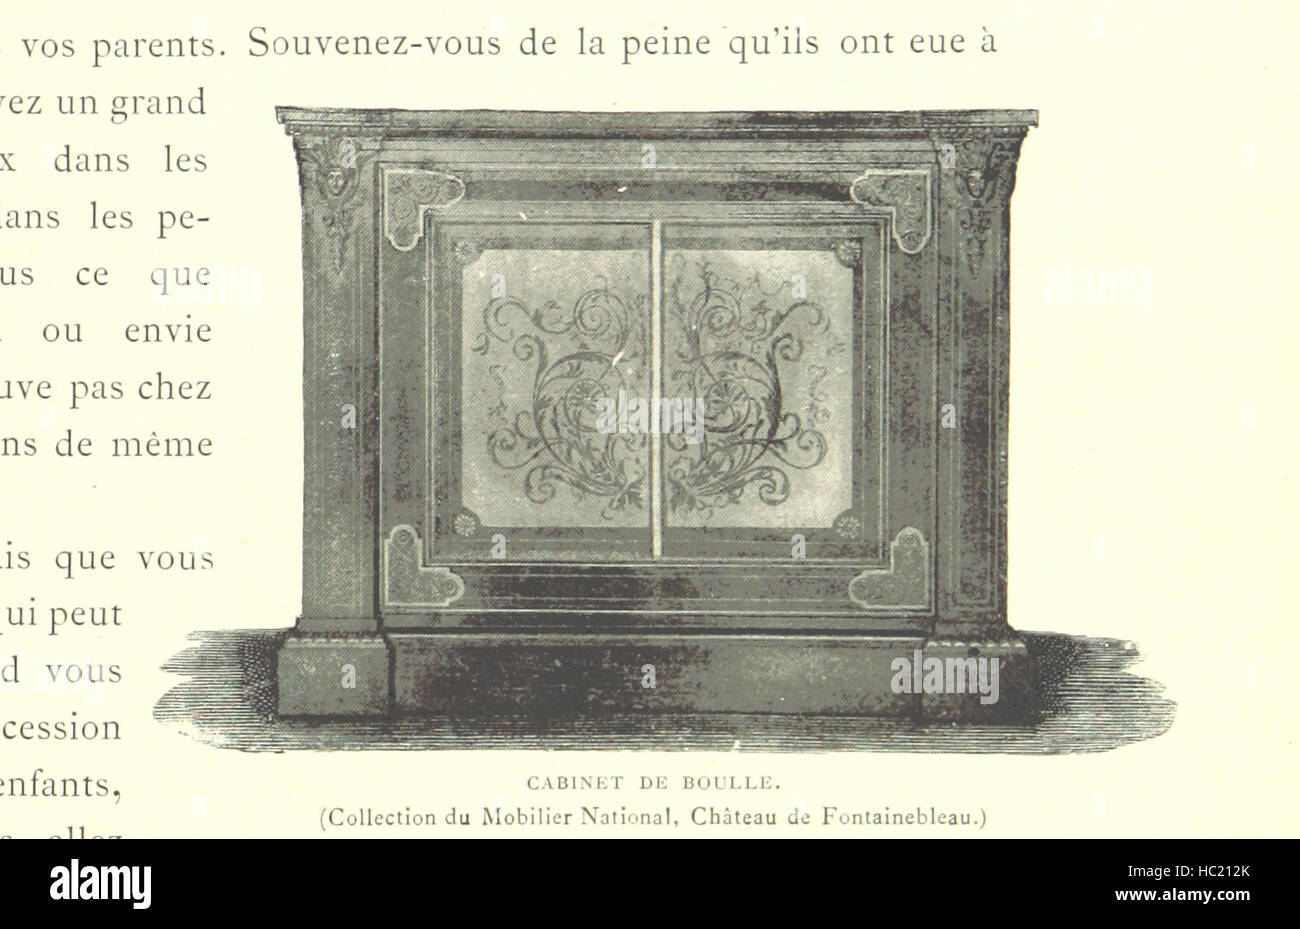 Image Taken From Page 225 Of U0027Le Grand Siècle. Louis XIV. Les Arts